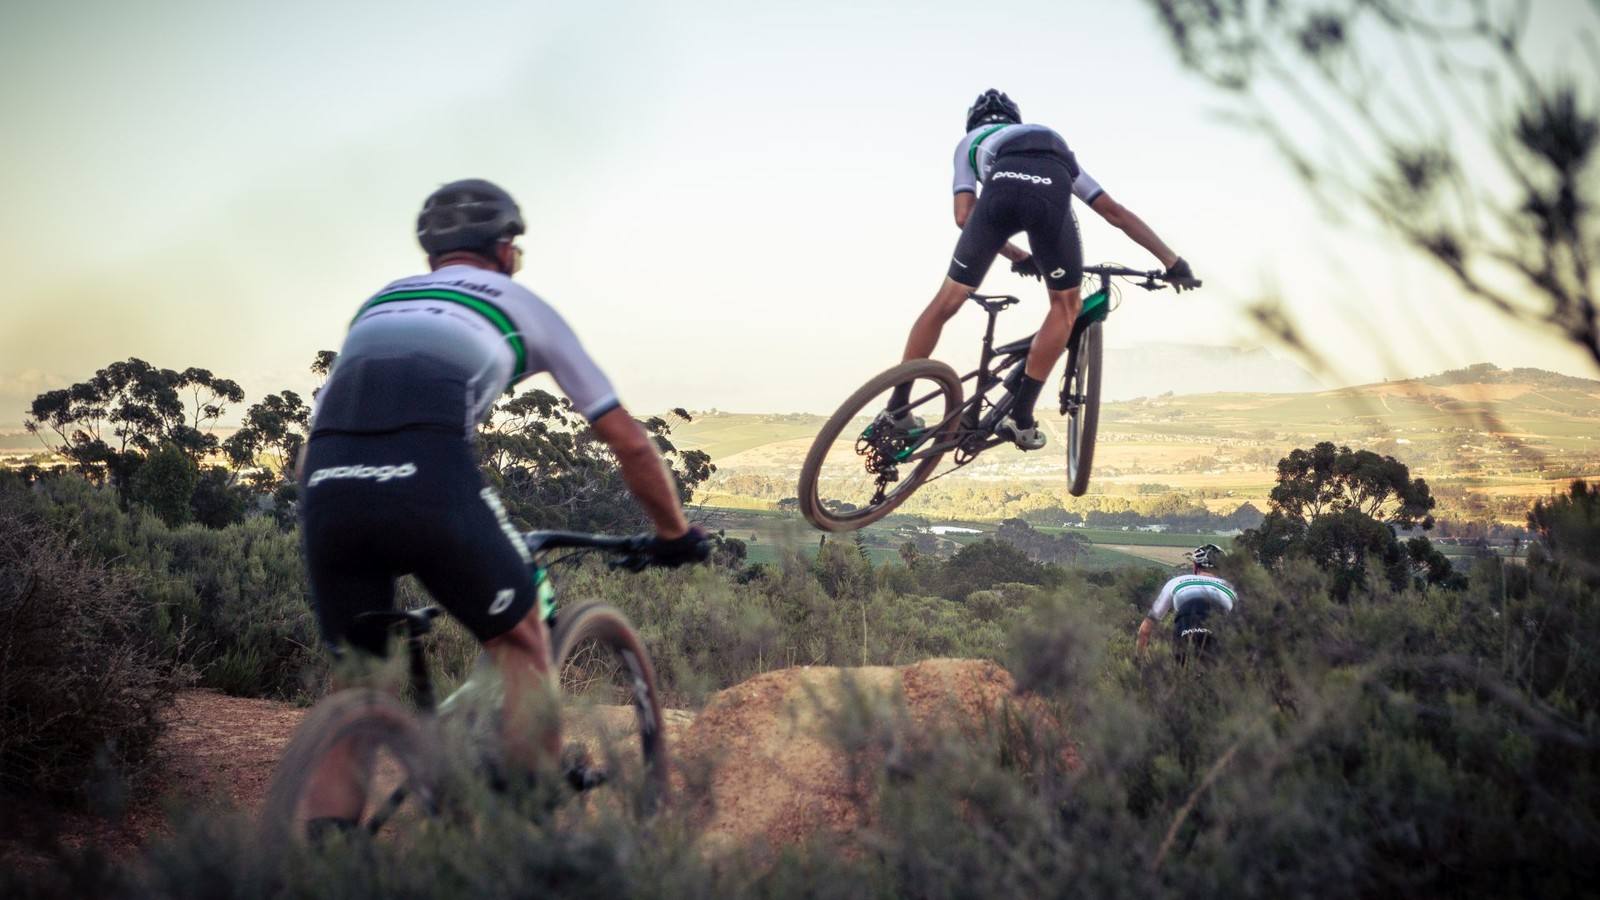 Cannondale Factory Racing | New Athlete Announcement for 2021